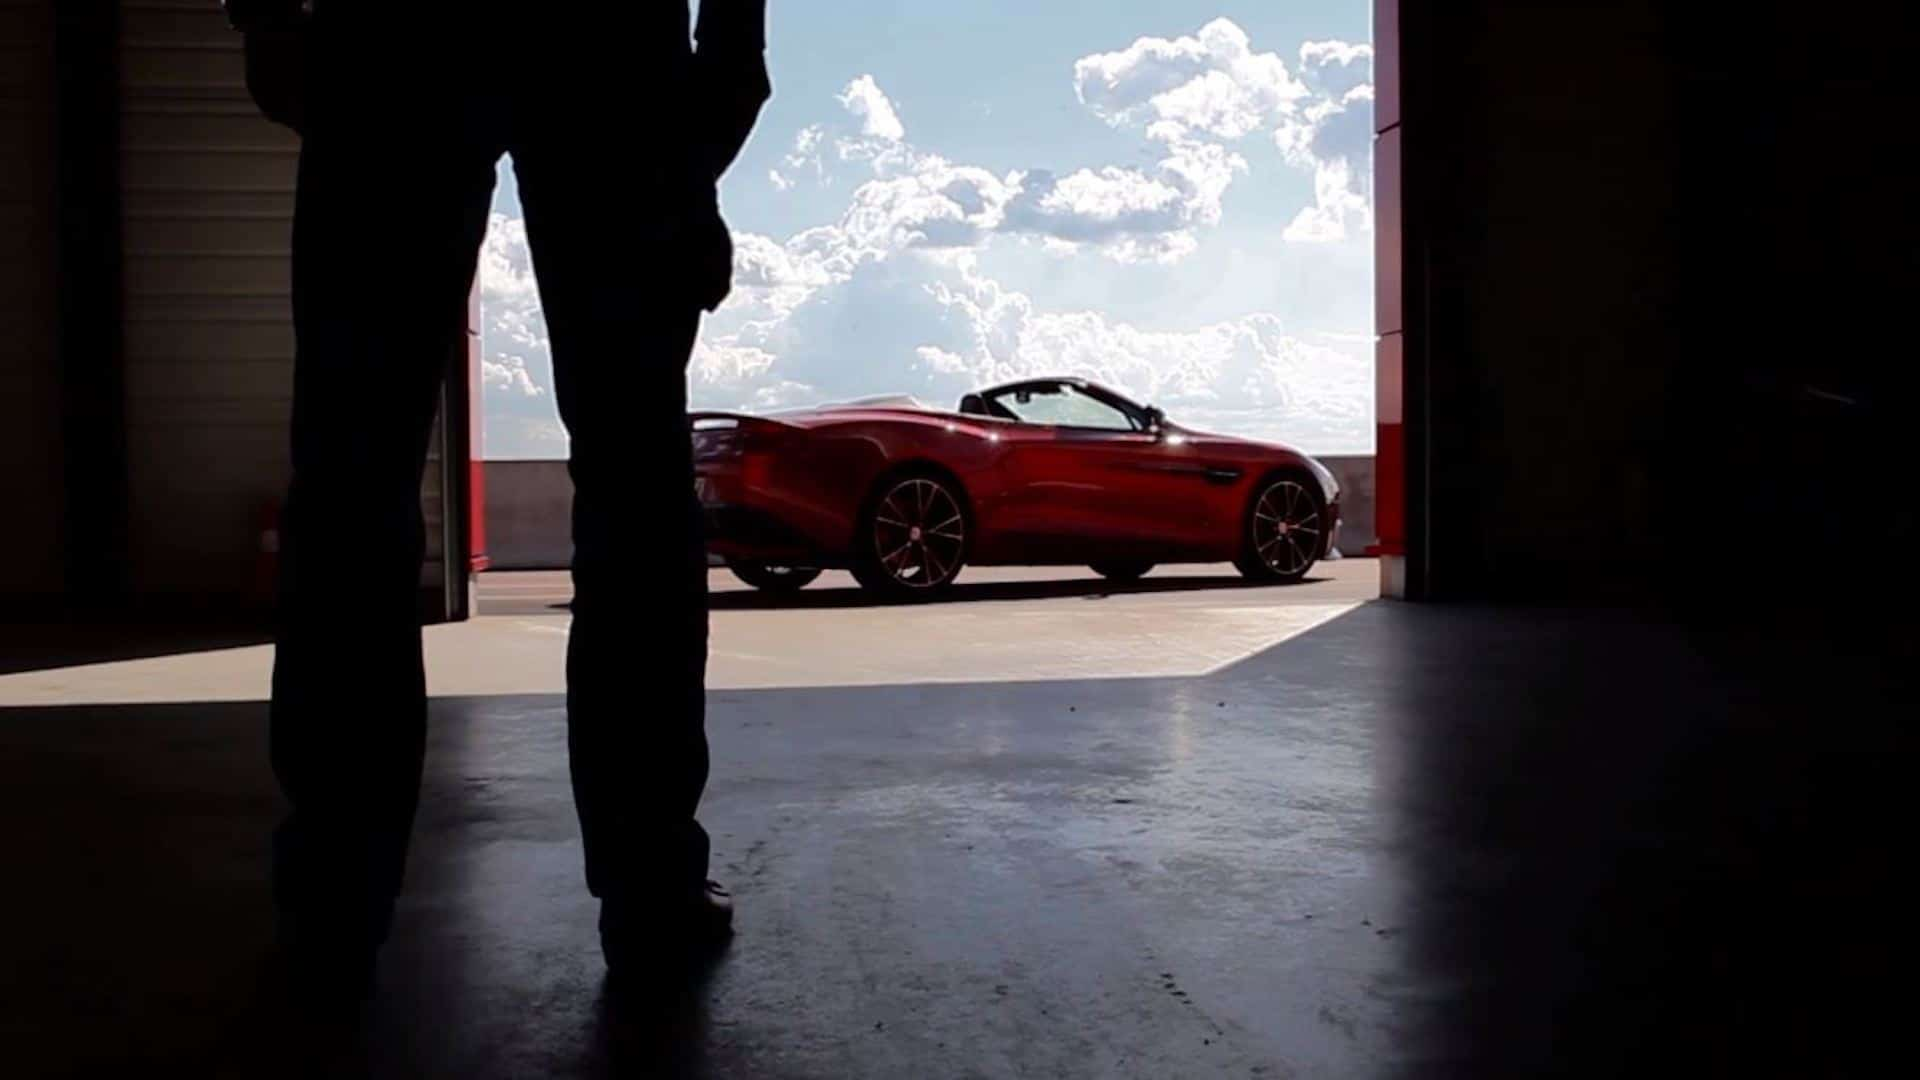 Aston Martin – Sublime goes on